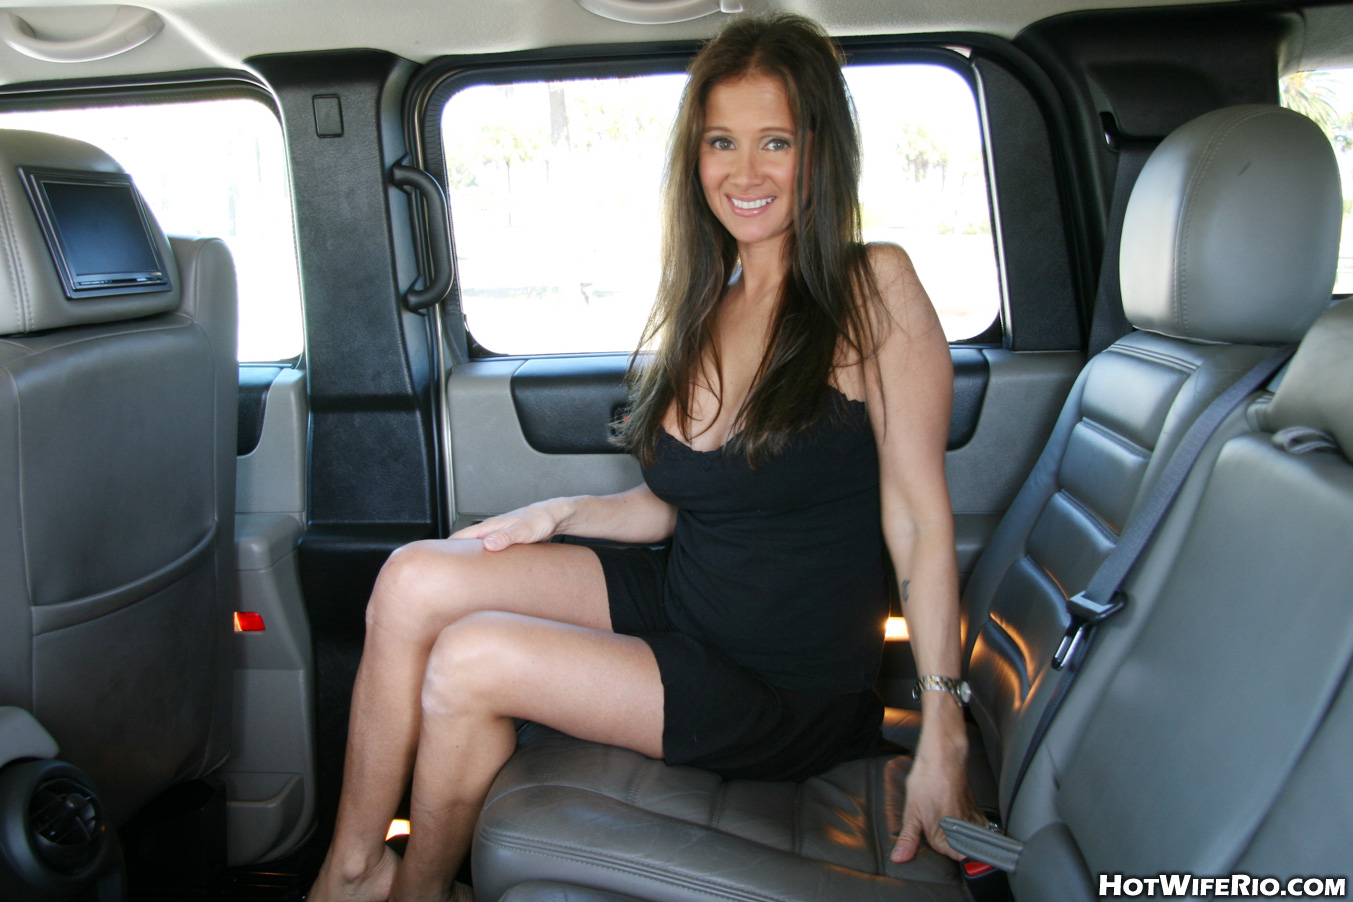 Wife shows off tits in public